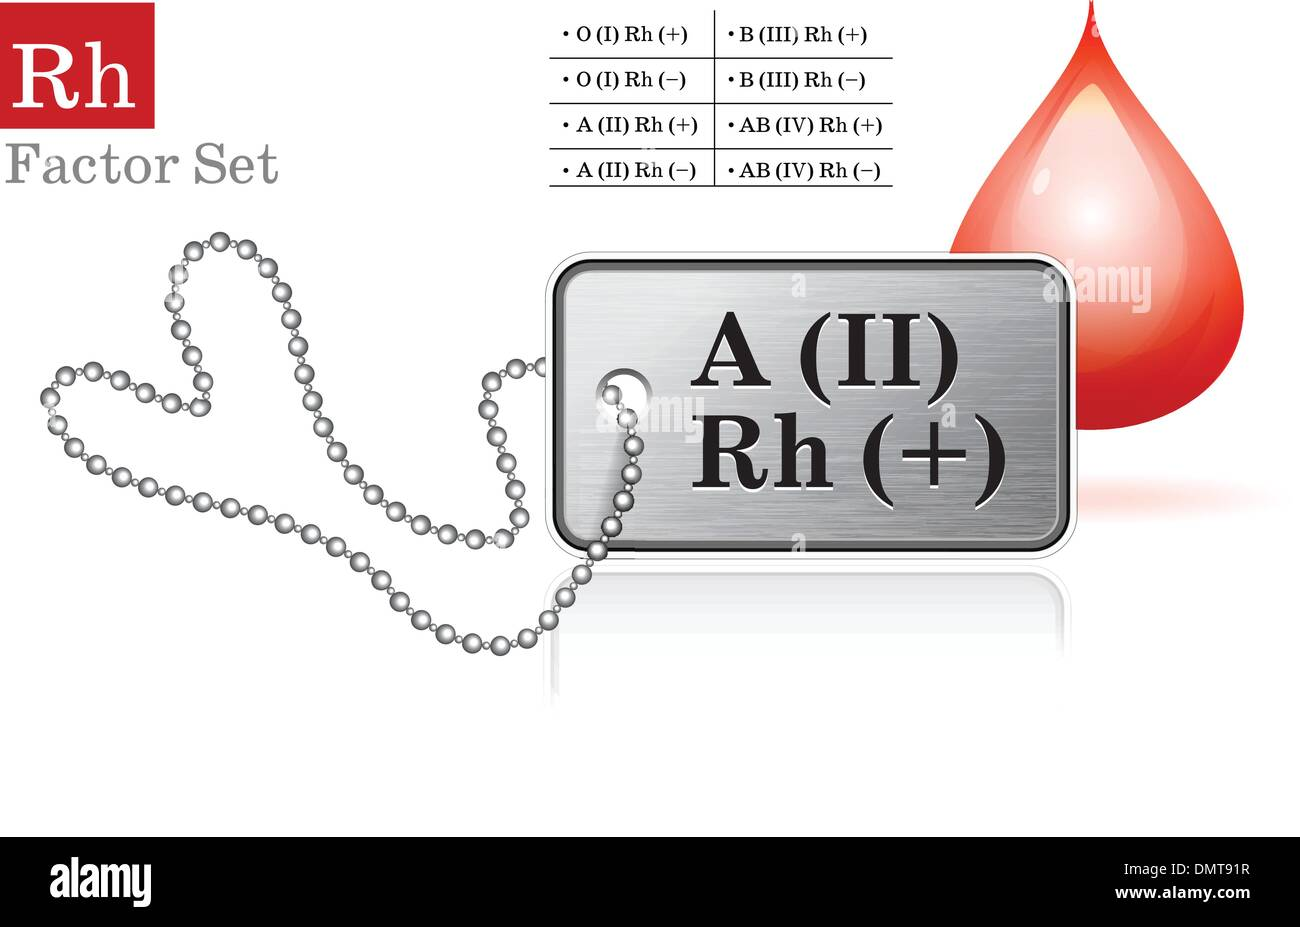 Id tag with Rh factor - Stock Image